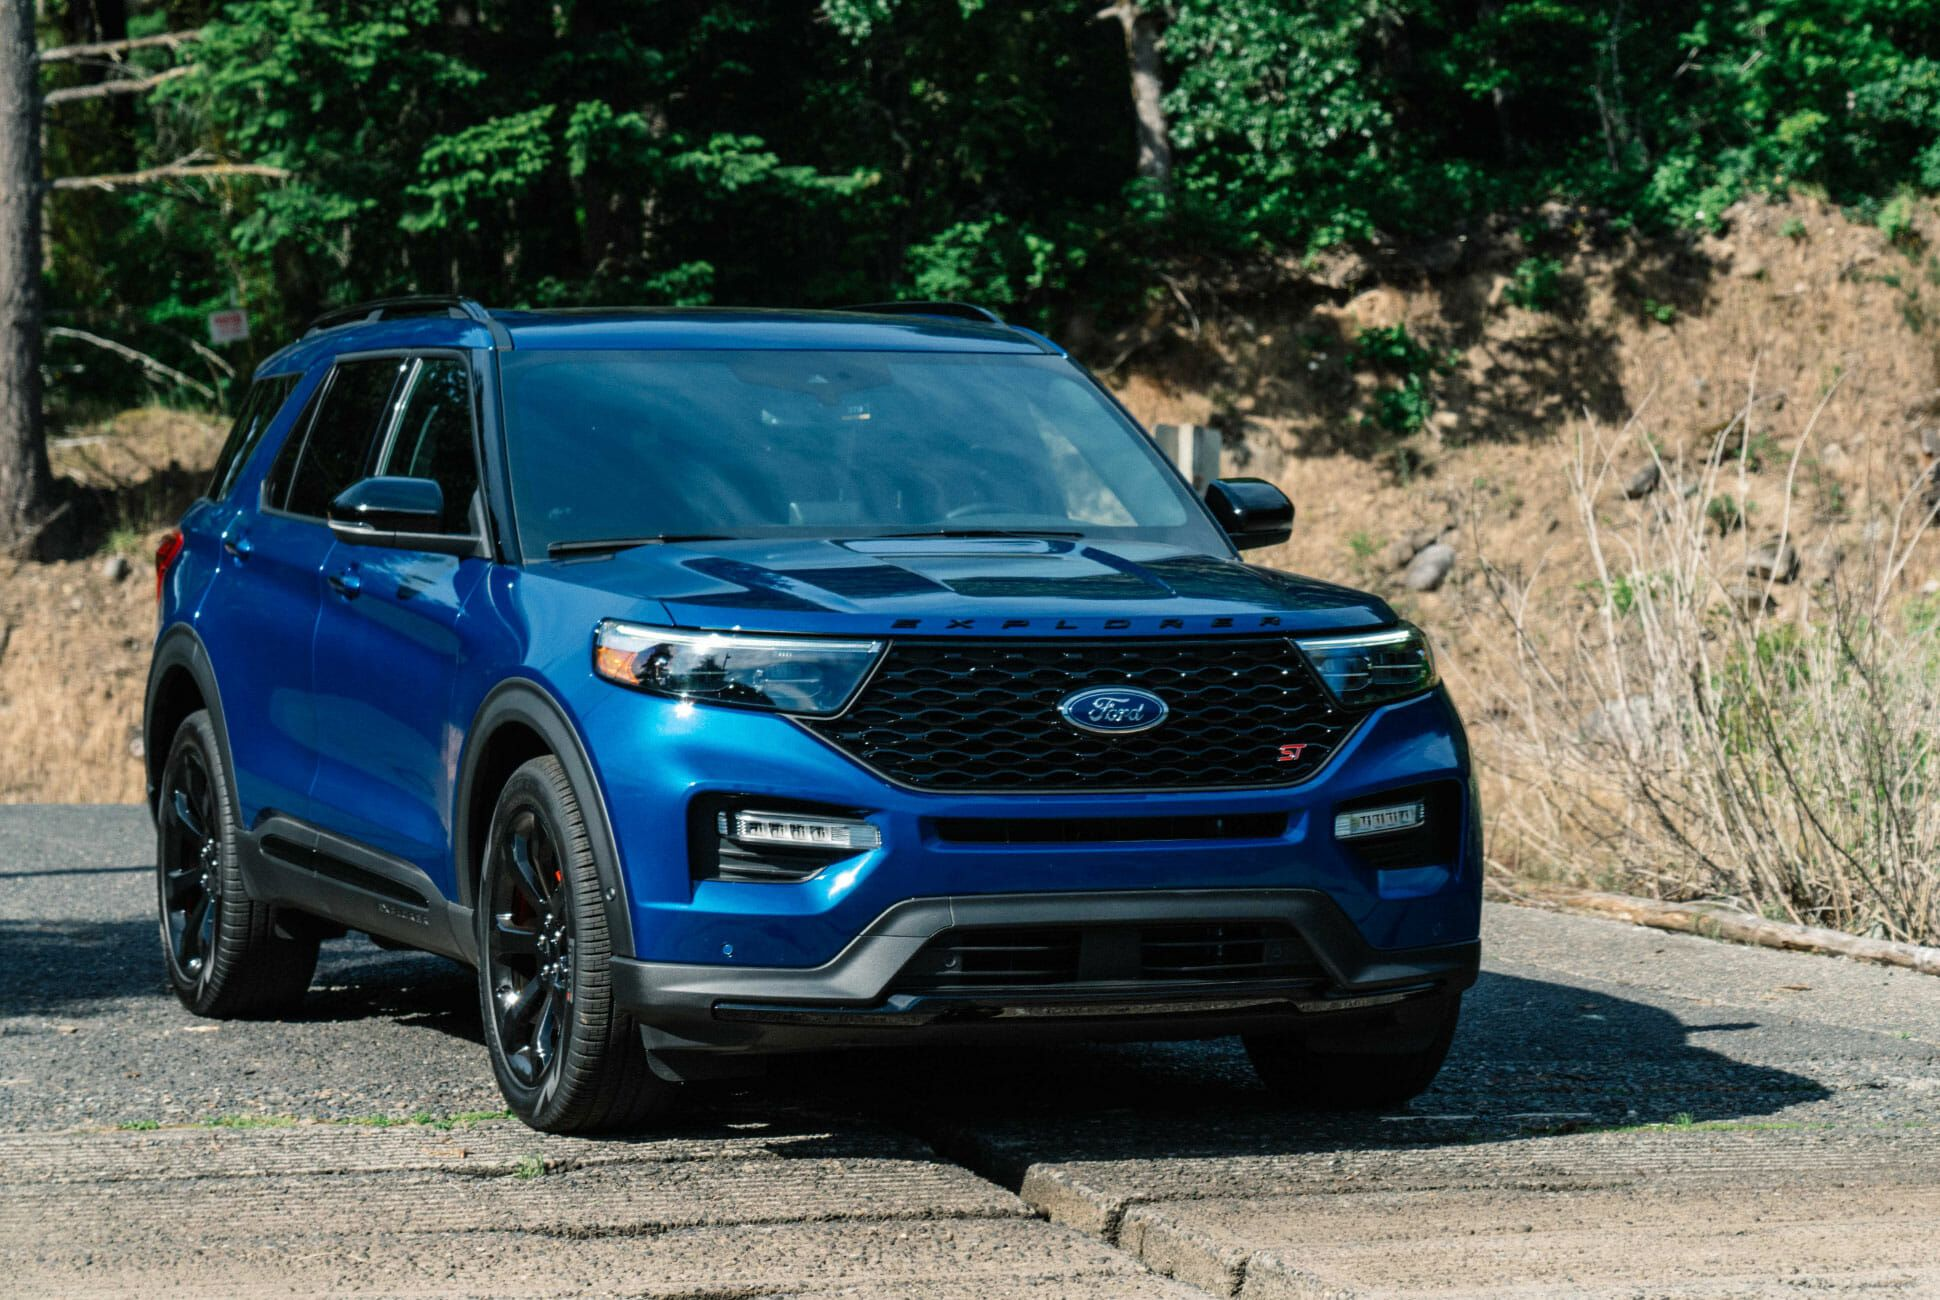 Ford Explorer 2020 Review.2020 Ford Explorer Review Setting The Benchmark For